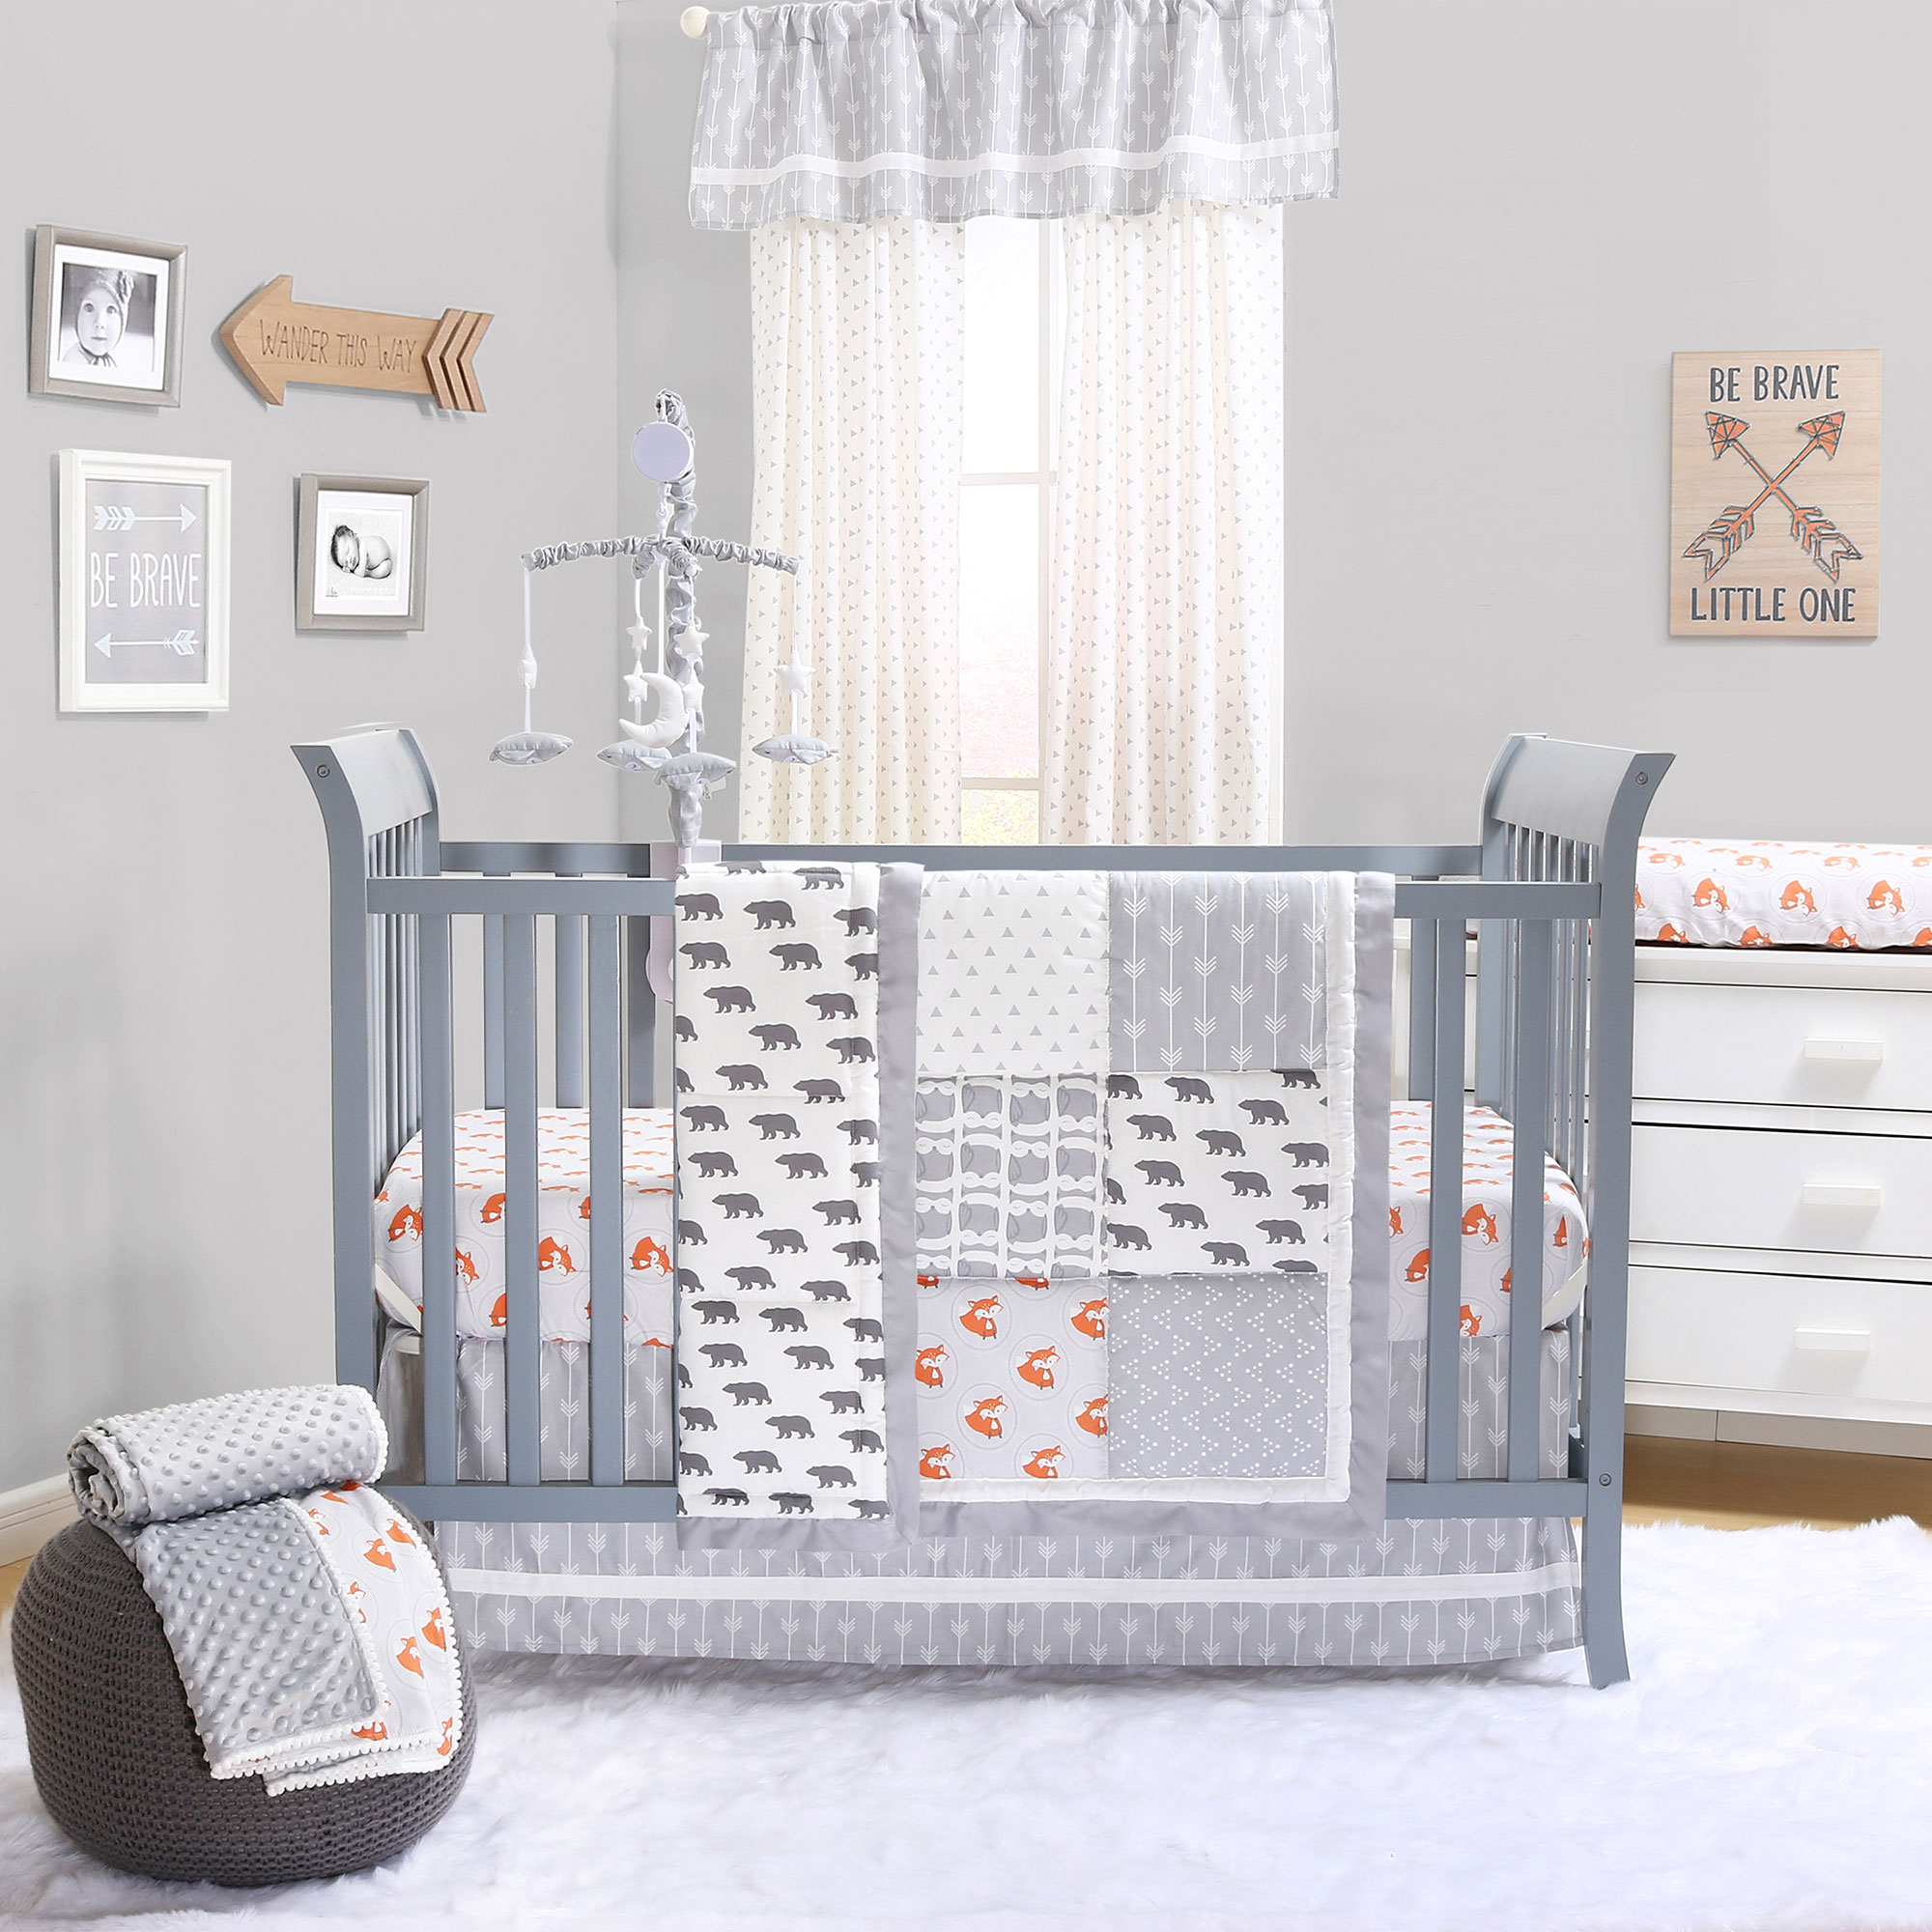 Grey and Orange Woodland Friends 3 Piece Crib Bedding Set by The Peanut Shell